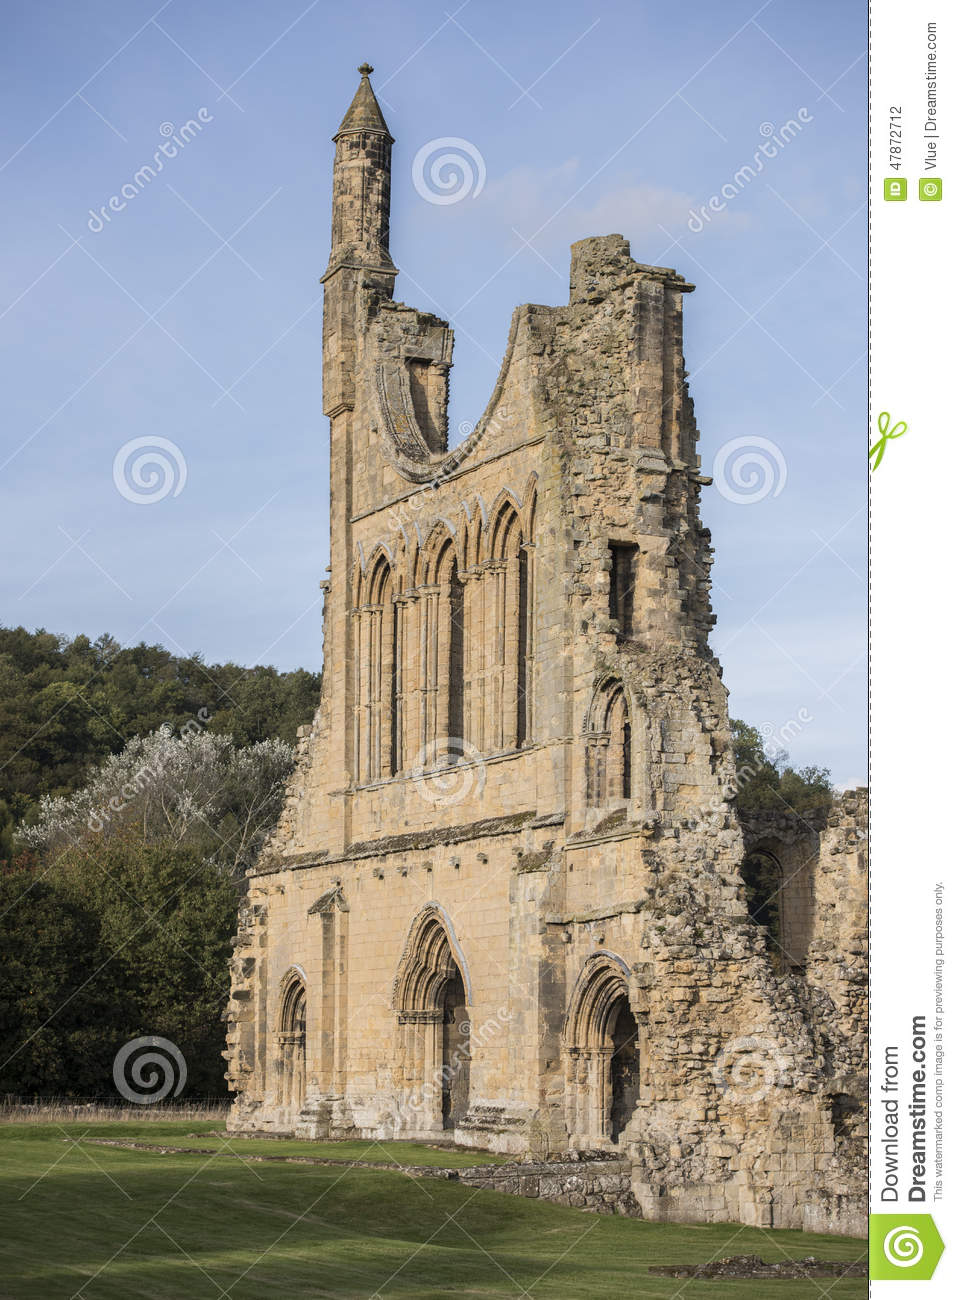 Byland Abbey Ruins, North Yorkshire, England Stock Photo.